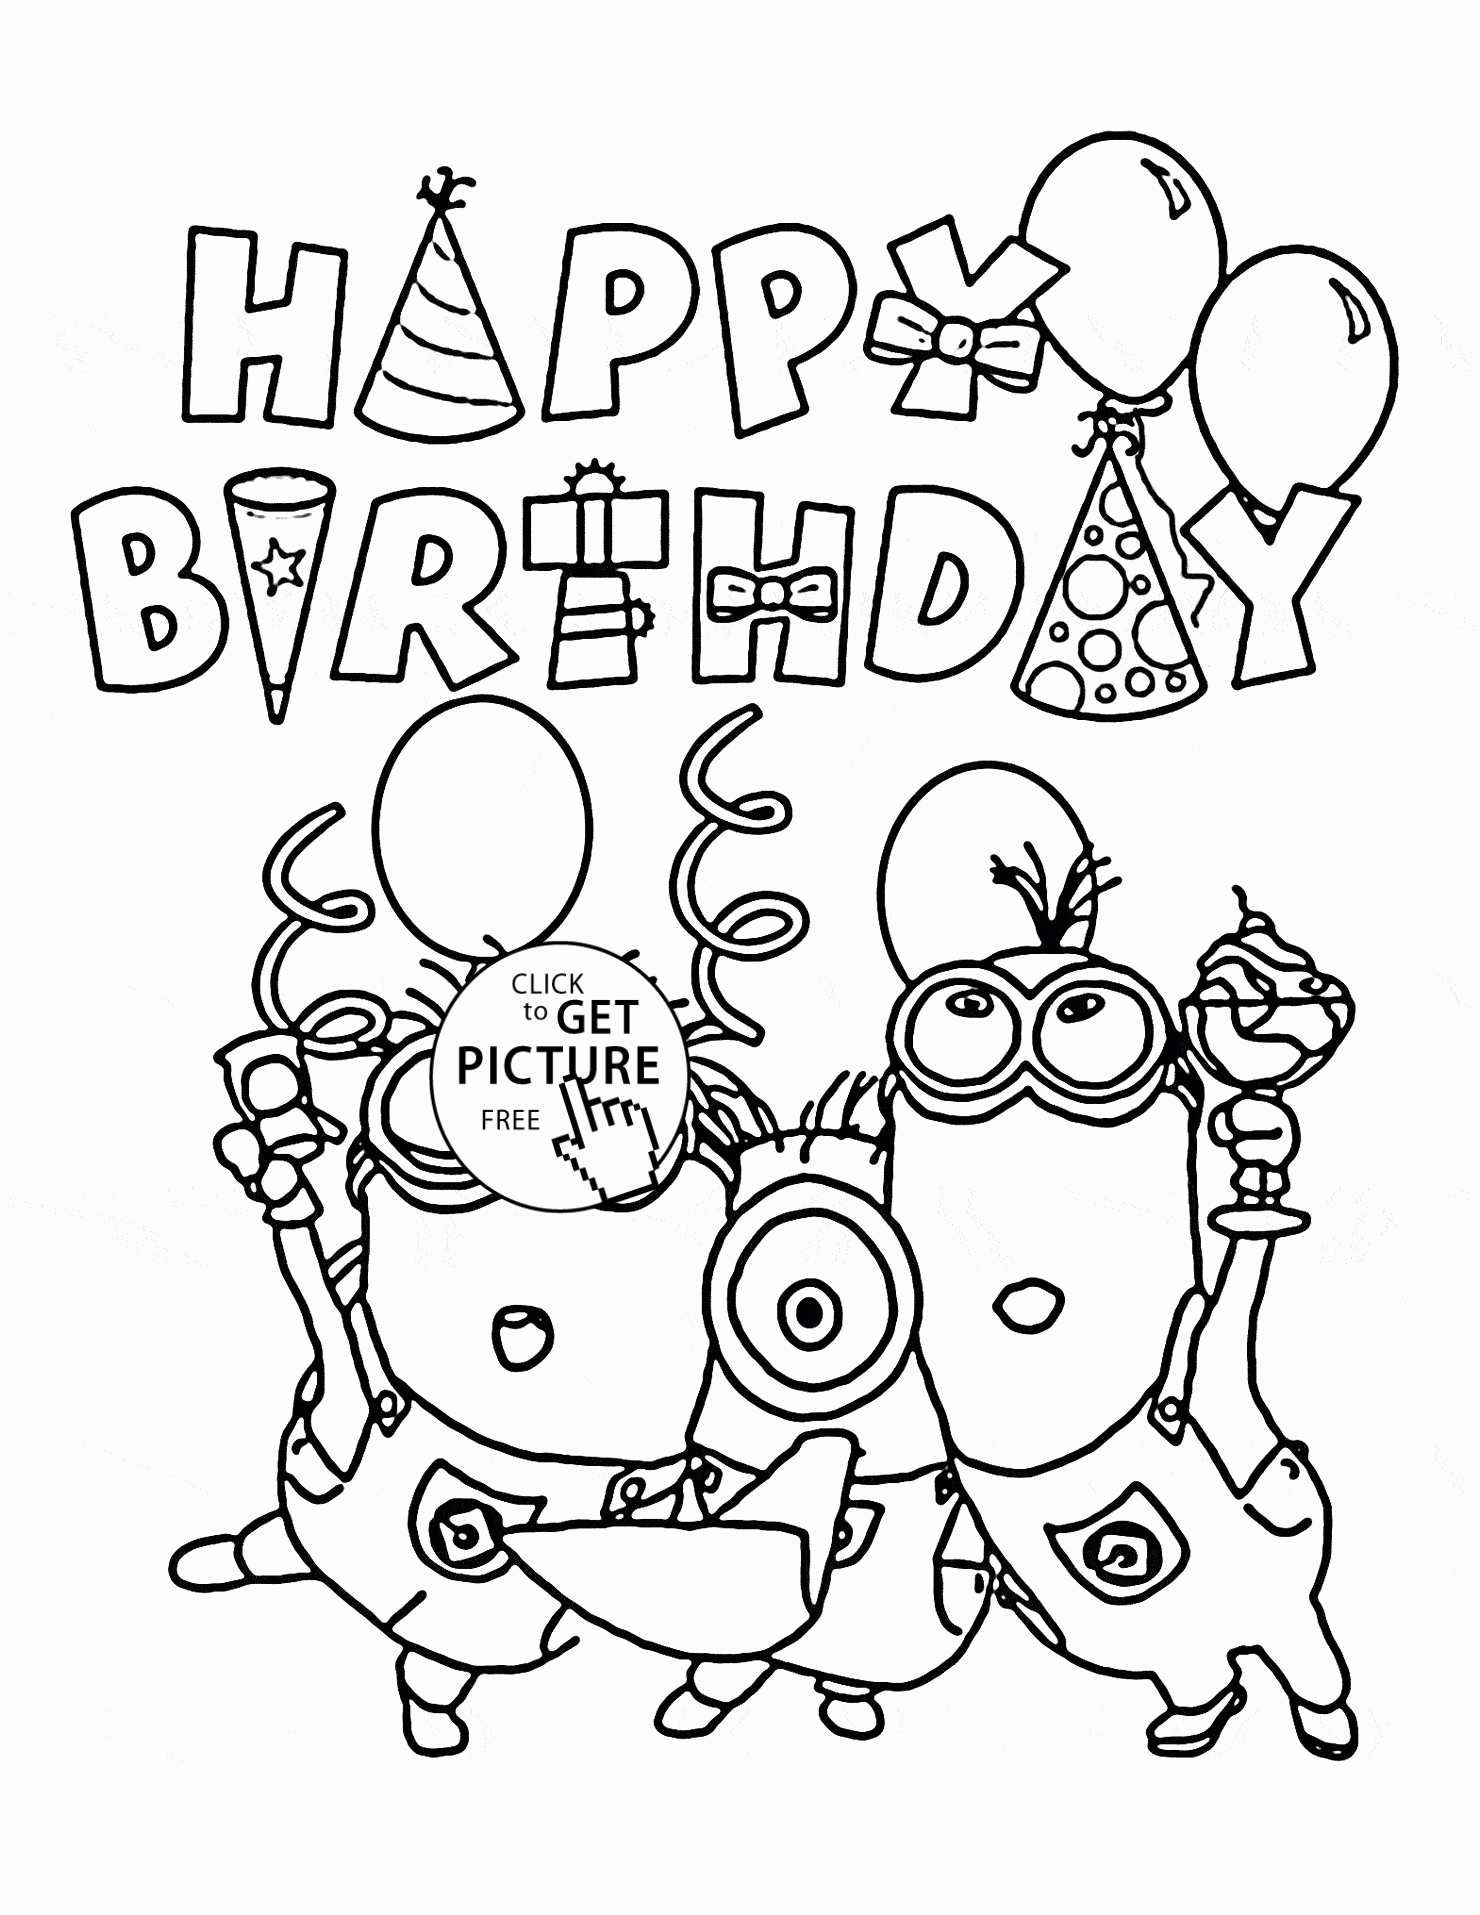 Daddy Coloring Pages Coloring Pages Happyday Coloring Card Daddy Printable For Mom And